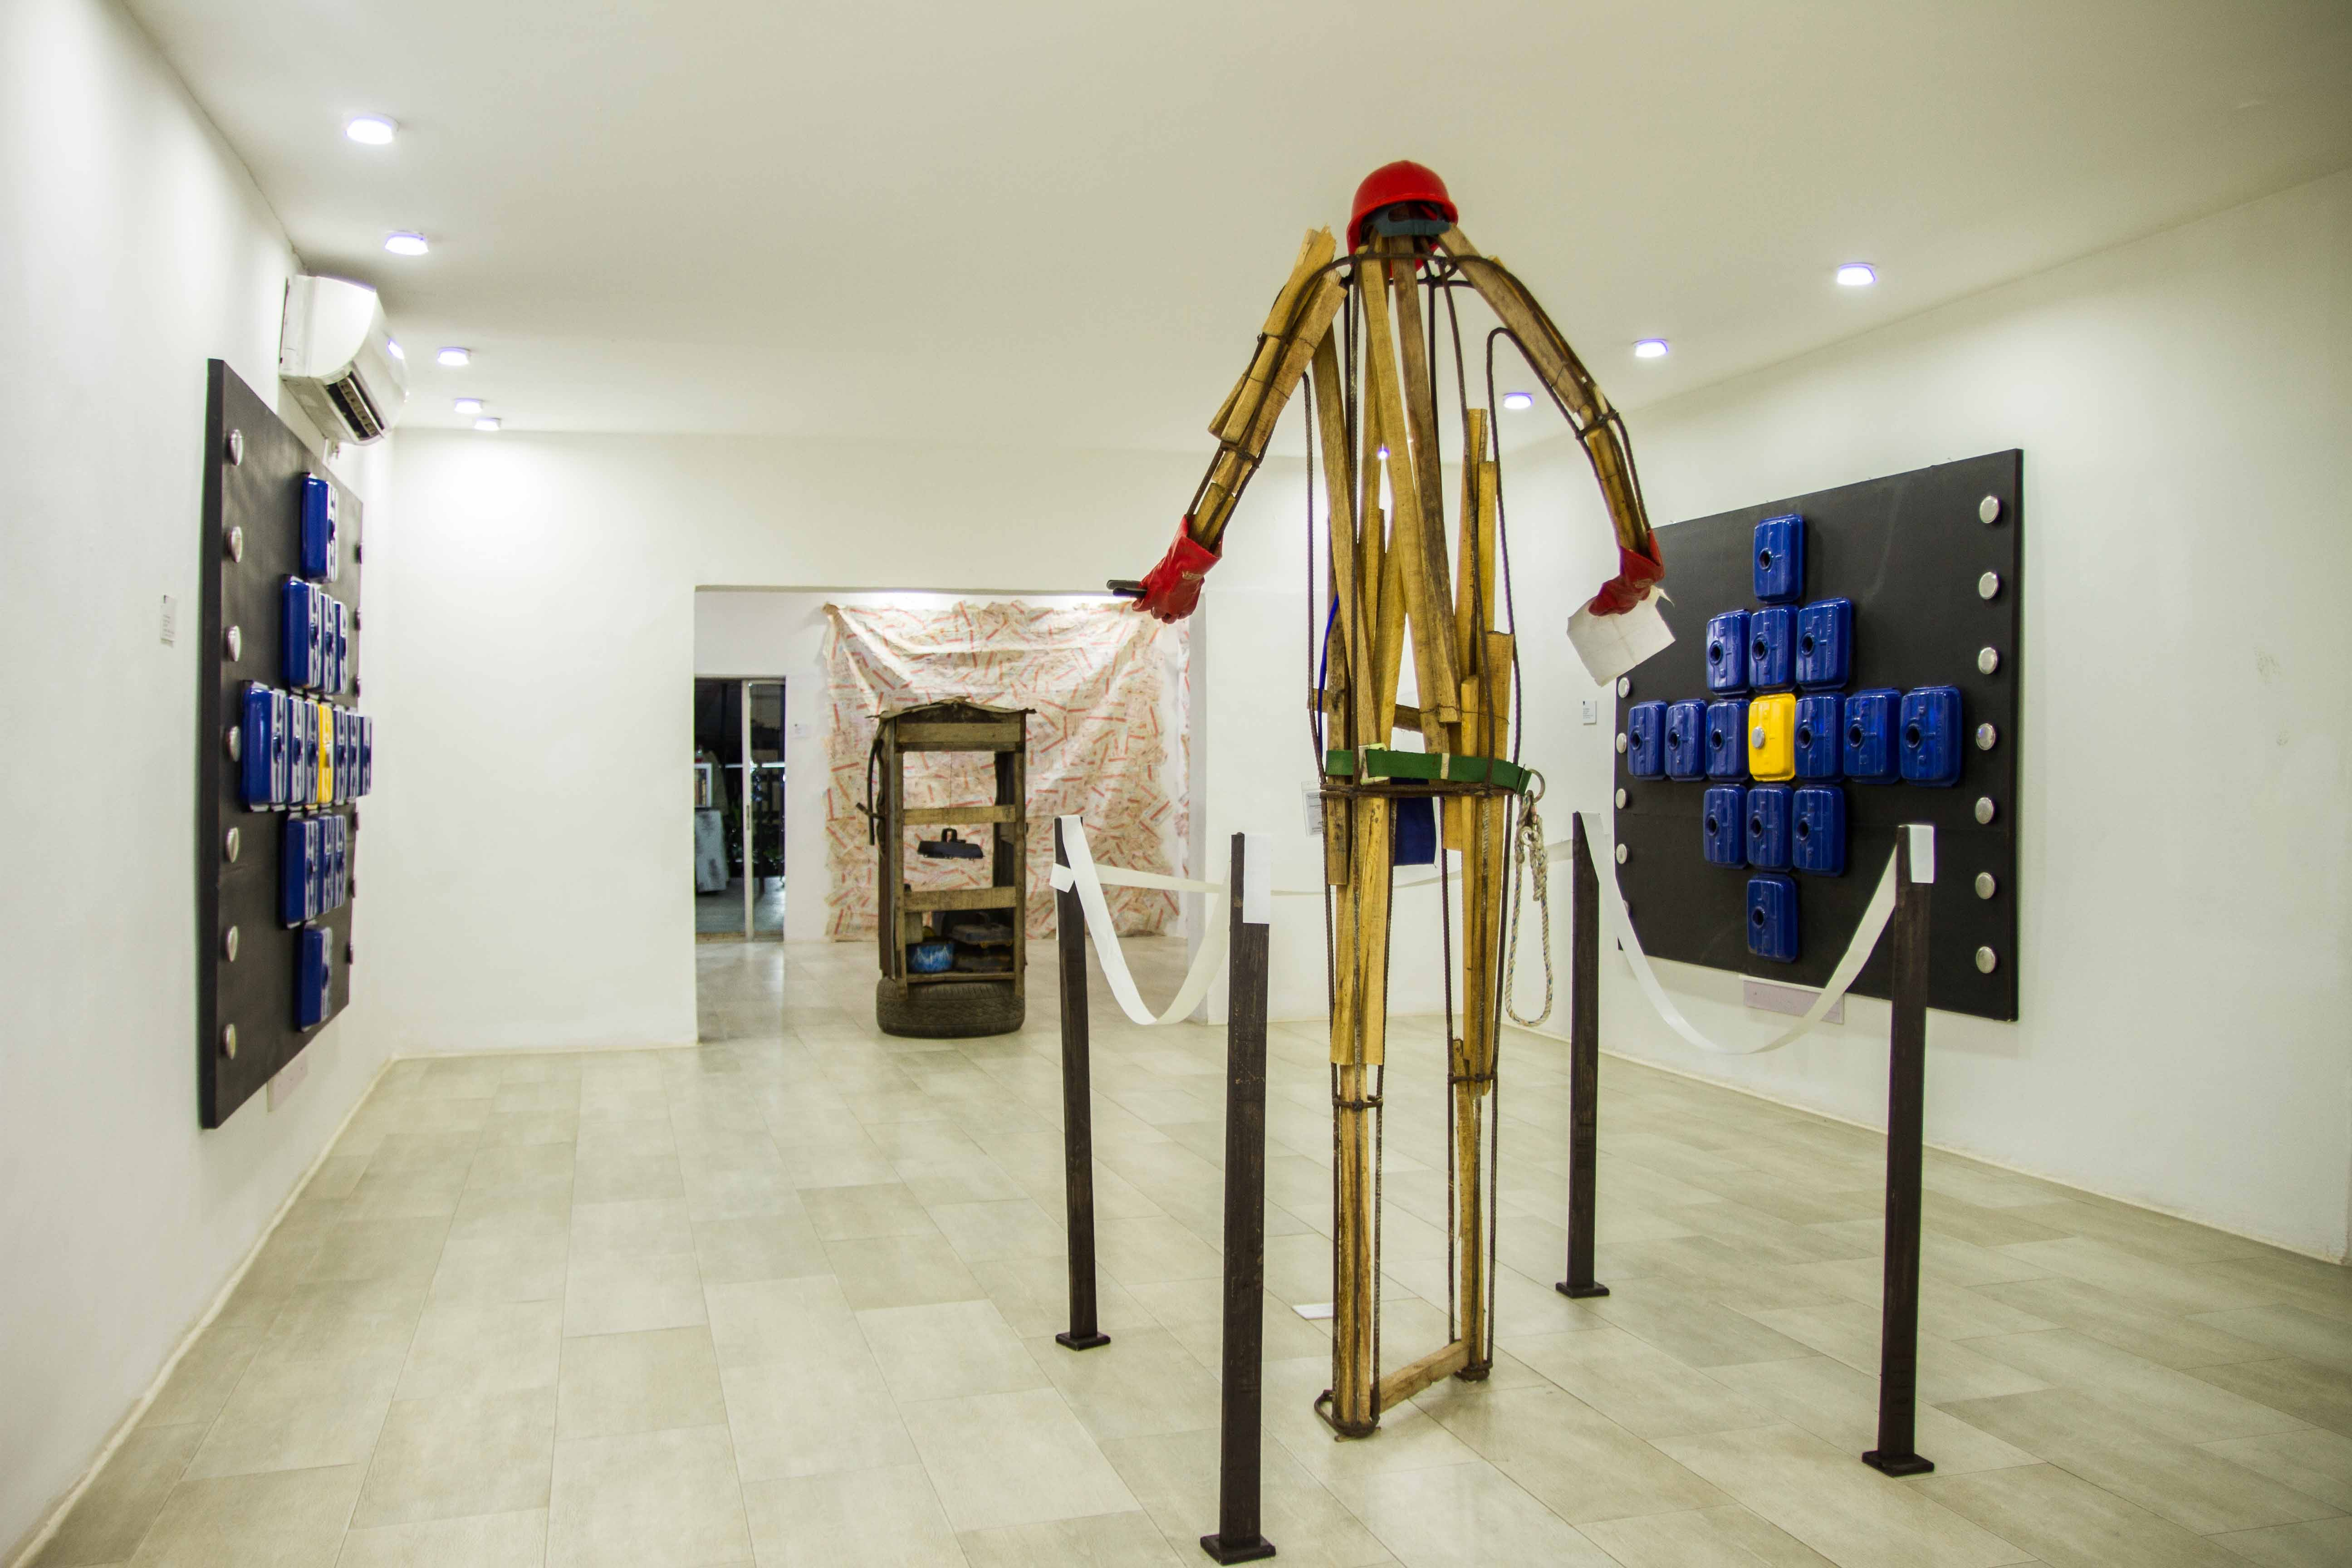 Ayo Akinwande, Power Show Exhibition at Omenka Gallery, 2018. Installation view of works: (left) Open and Close I, (middle) Oga Ade, (right) Open and Close II, (in the entryway) Power House. Courtesy Ayo Akinwande